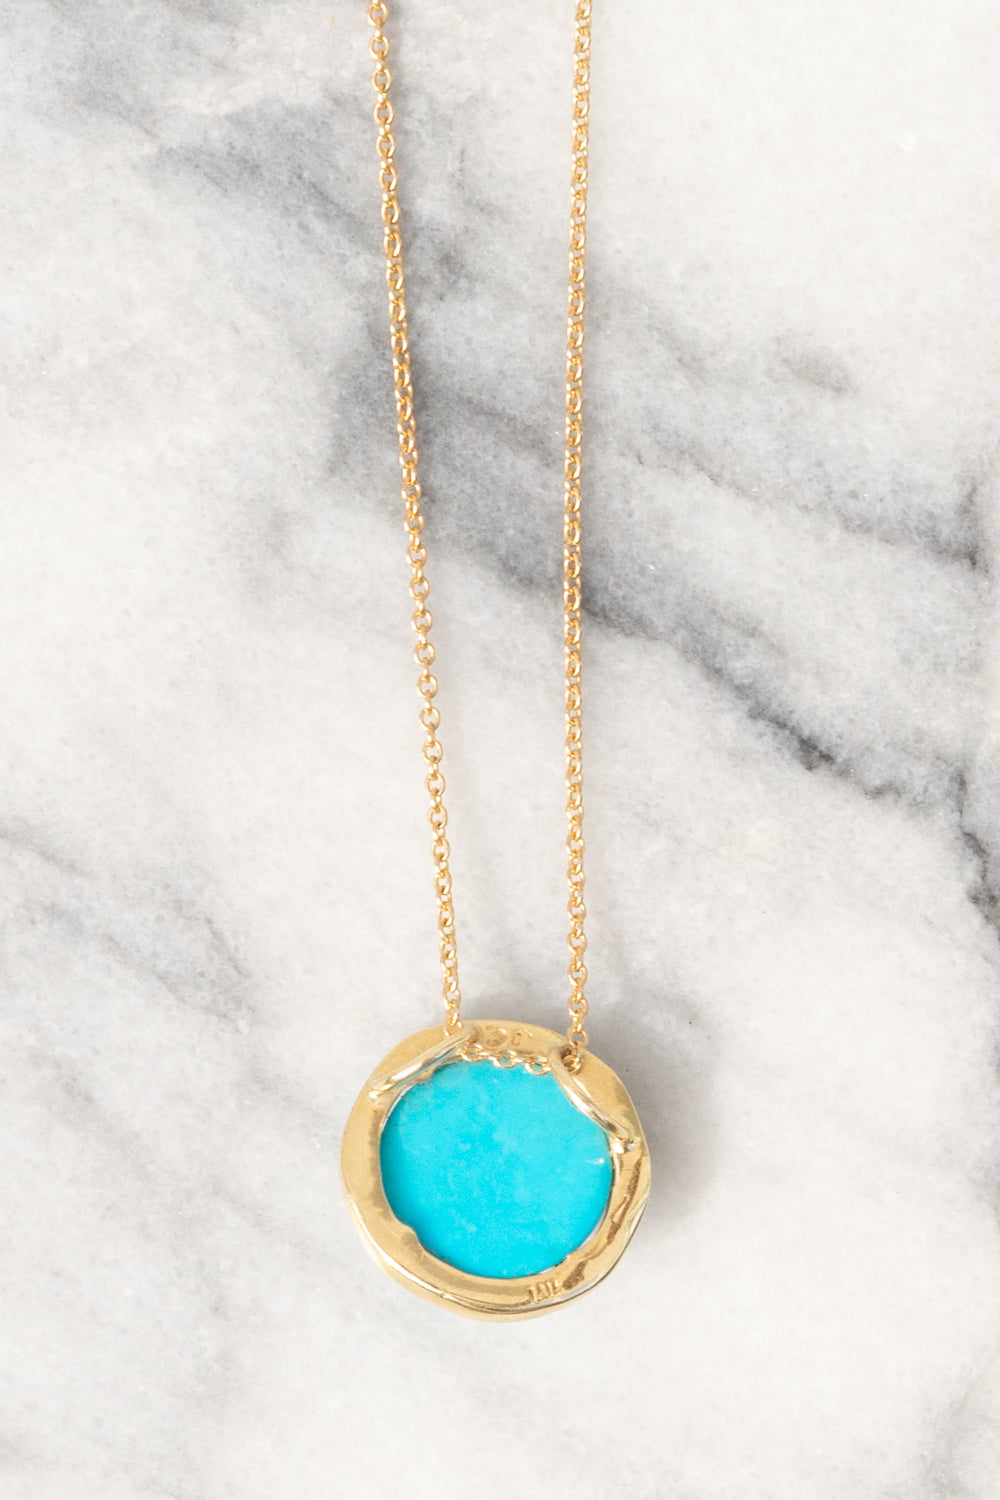 Janna Conner Sleeping Beauty Turquoise Necklace with Diamond Pavé 14K Yellow Gold view from backside